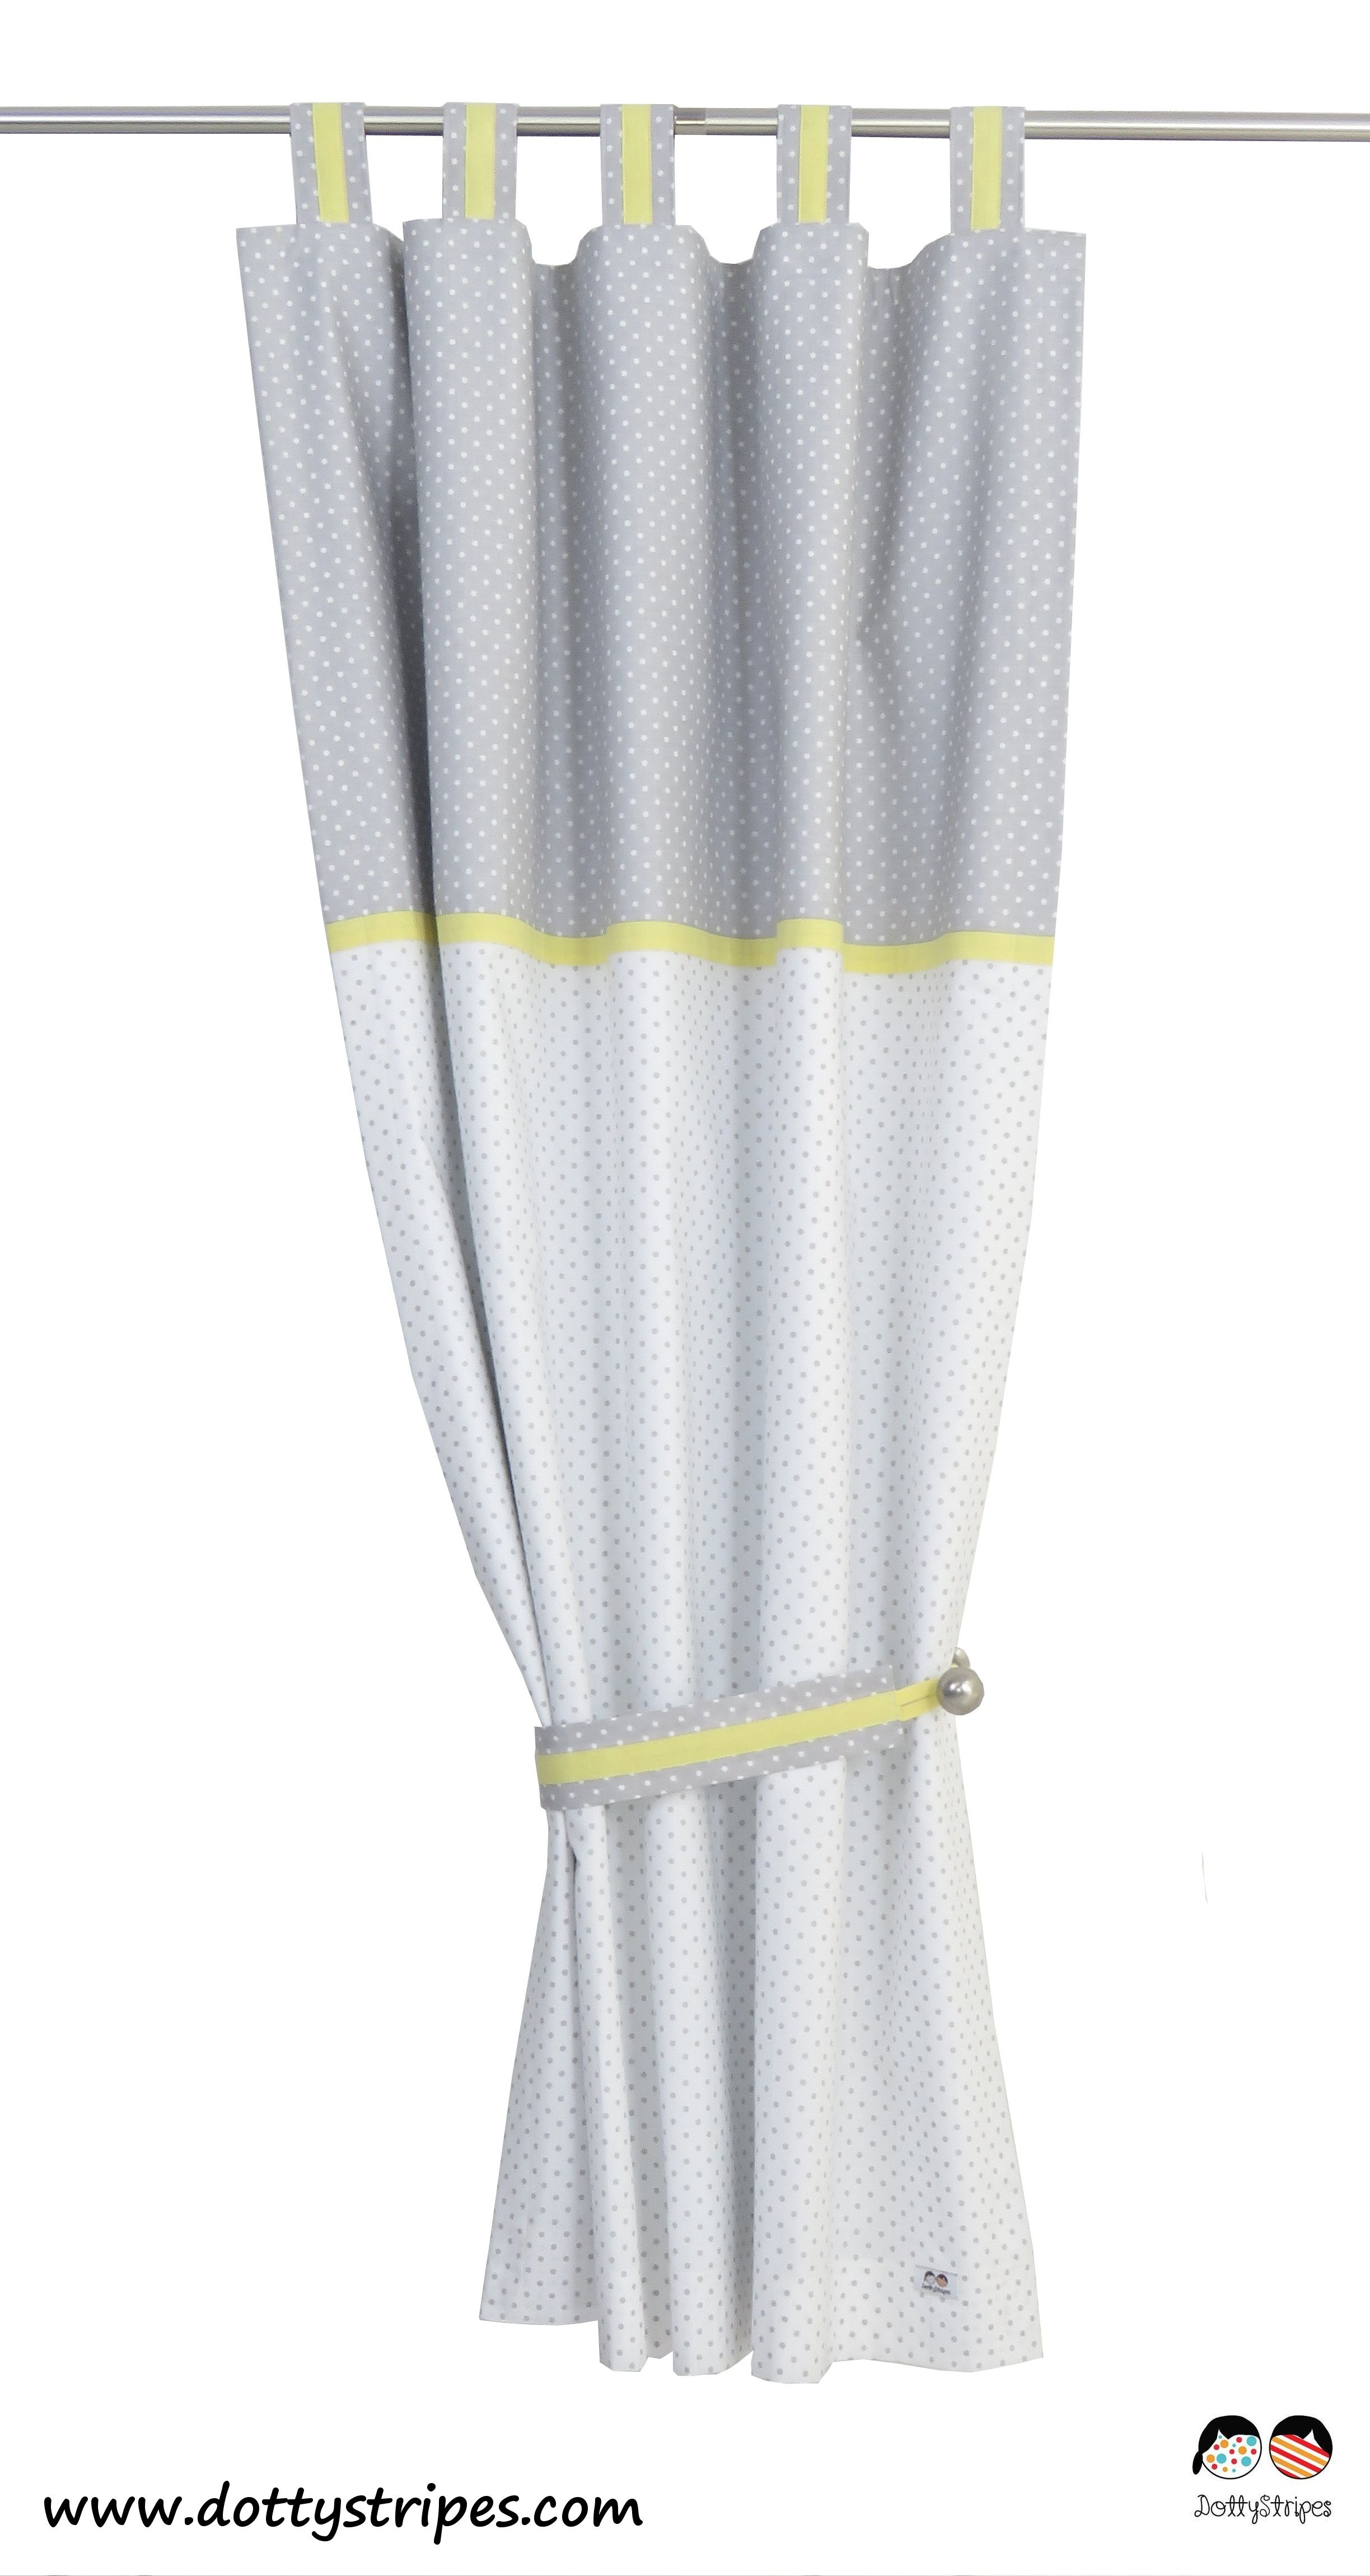 Boys Curtains In Yellow Grey And White Polka Dot Hand Made With Blackout Lining Highest Standard Or Craftsmanship Professional Advice About Size